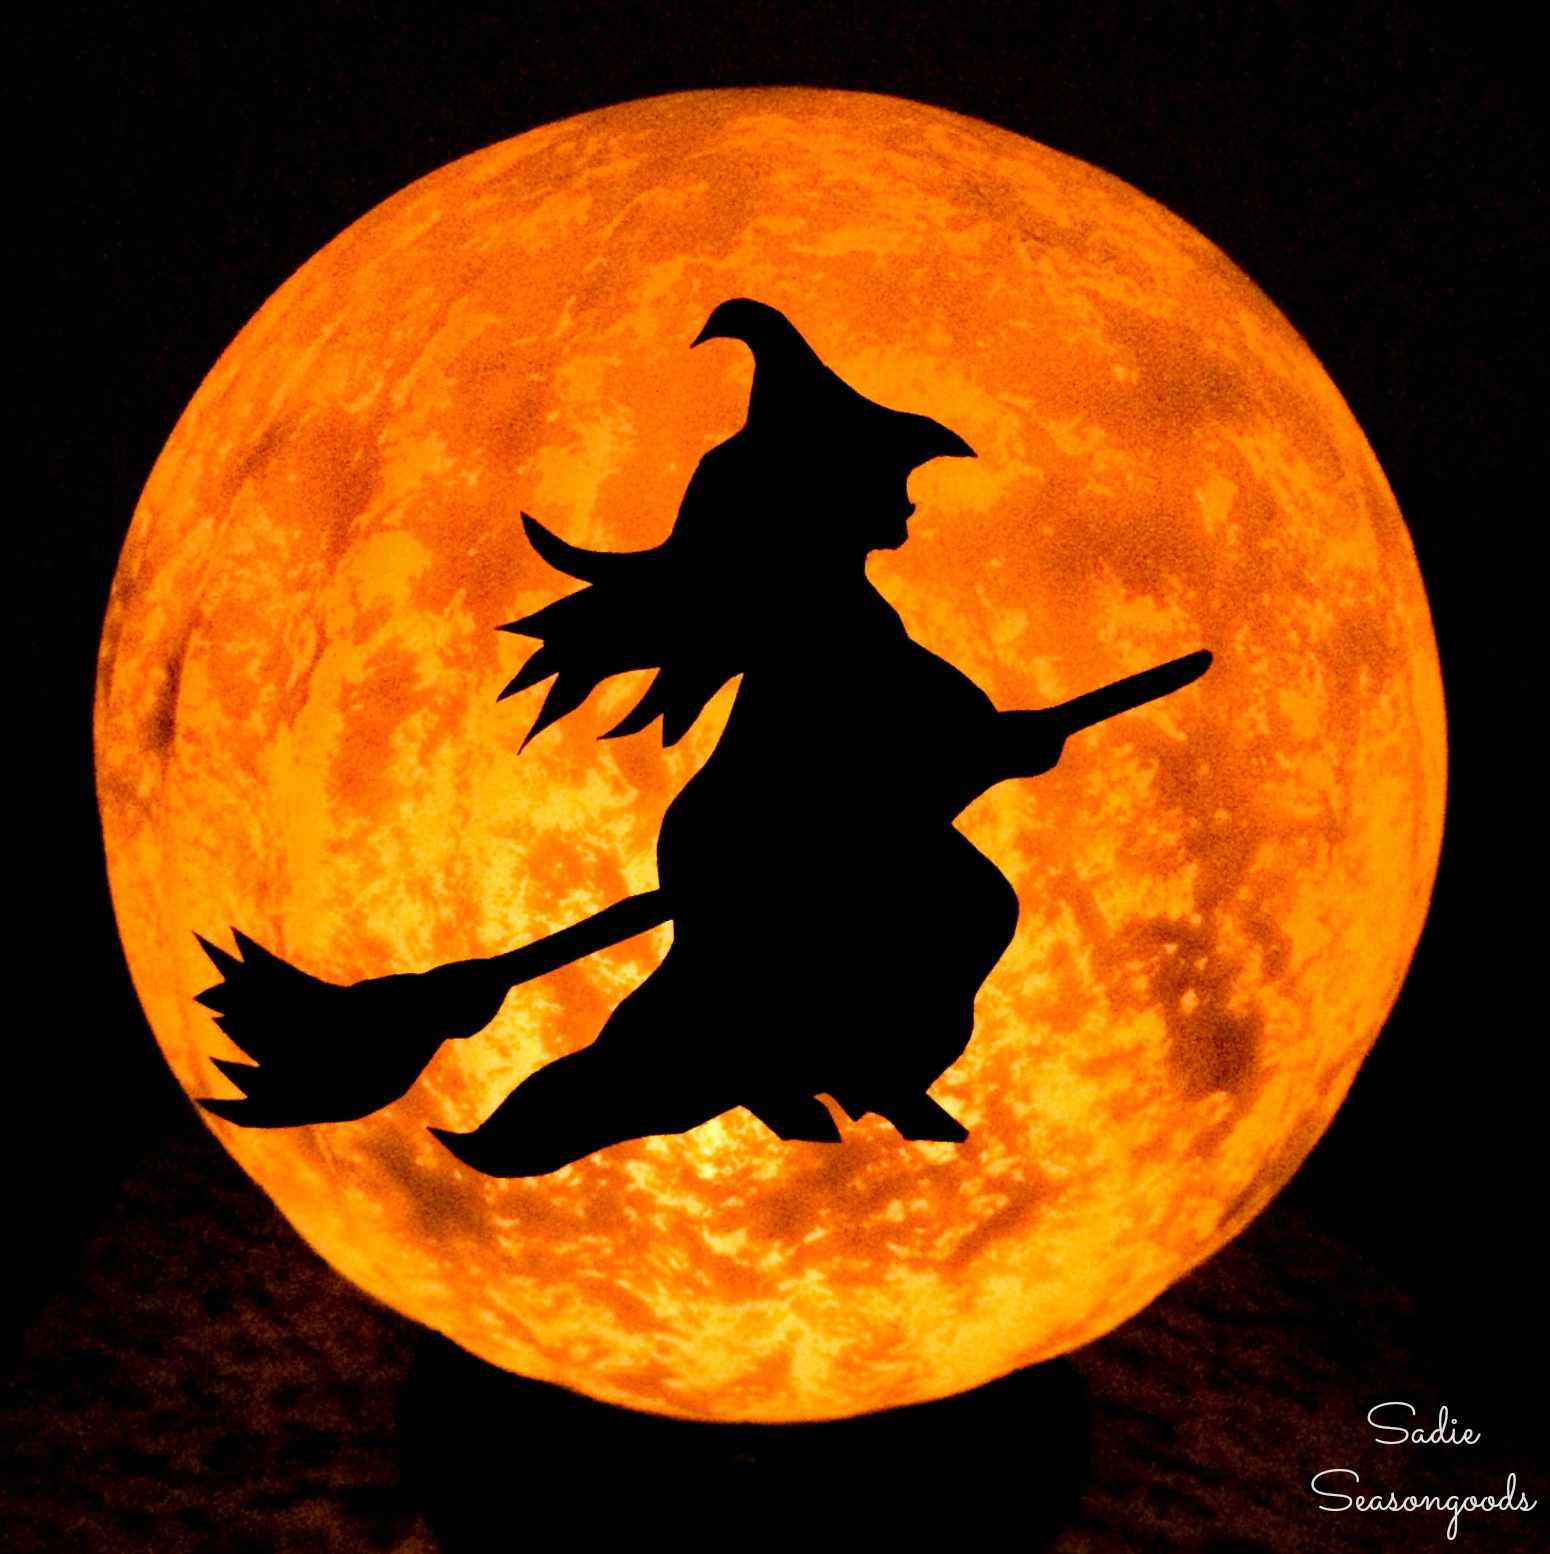 A witch riding a broomstick across the moon